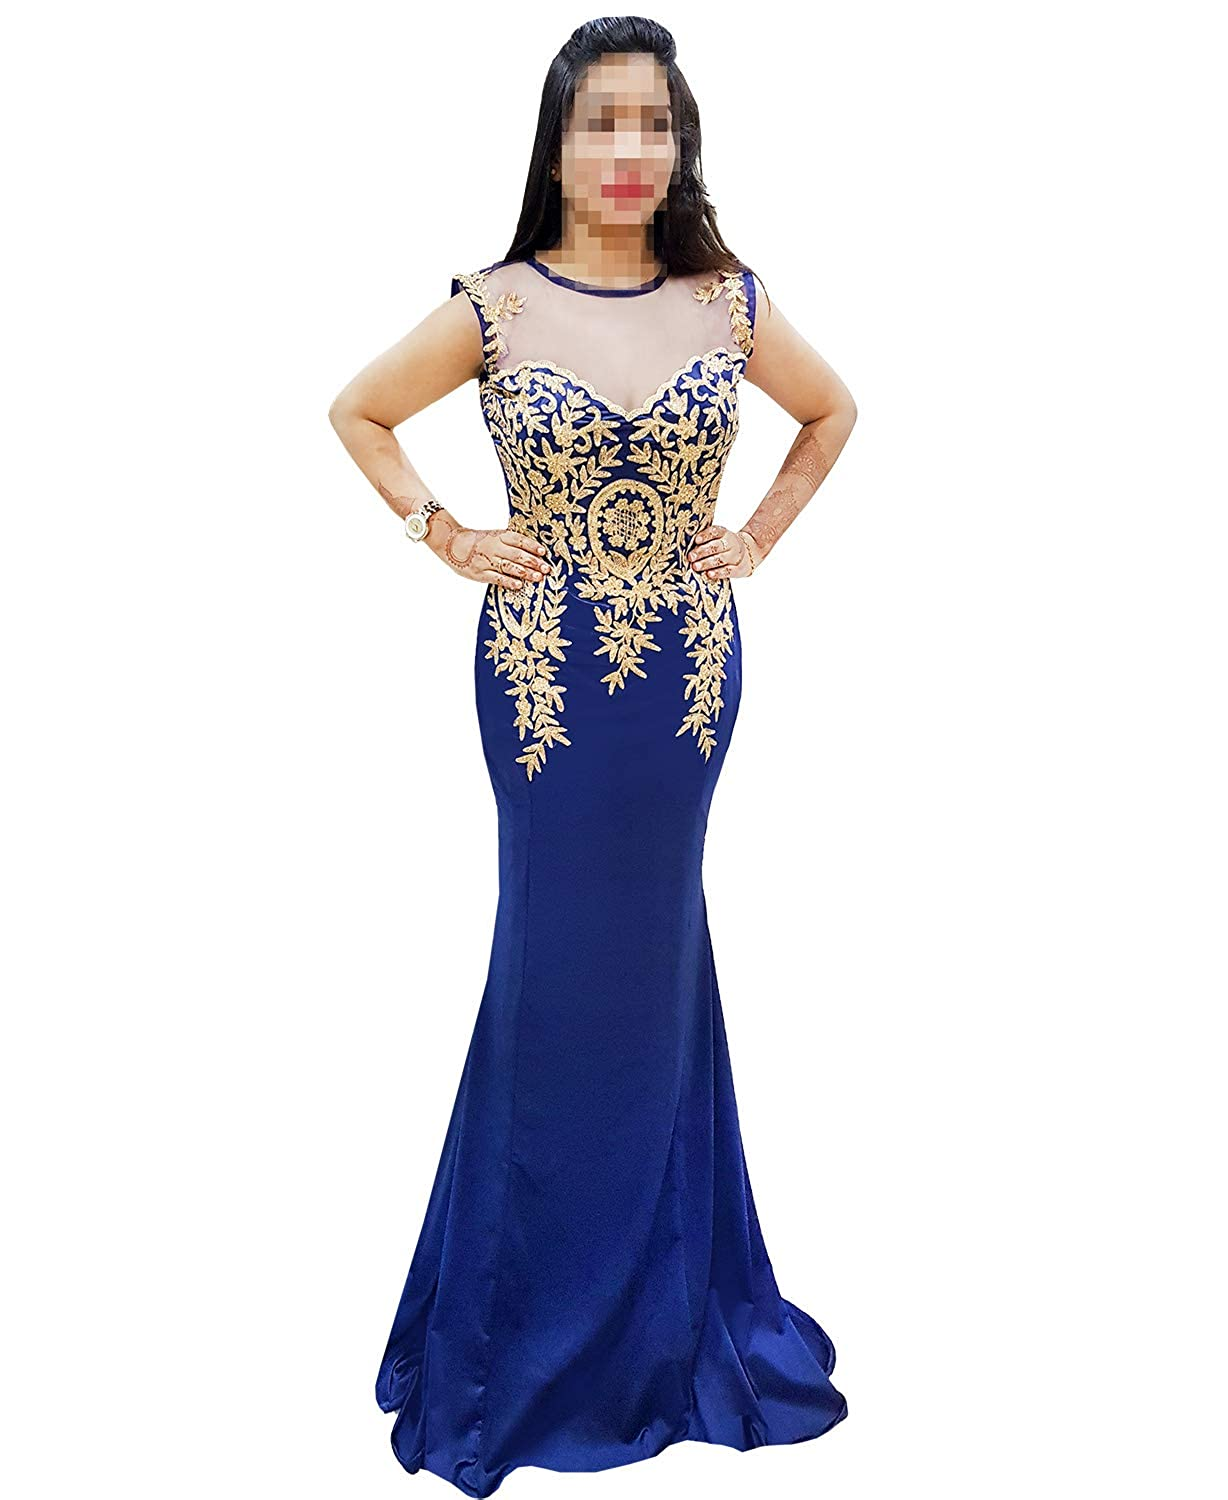 Navy bluee African Boutique Women's Rhinestone Long Zari Embroidery Formal Mermaid Evening Prom Dresses